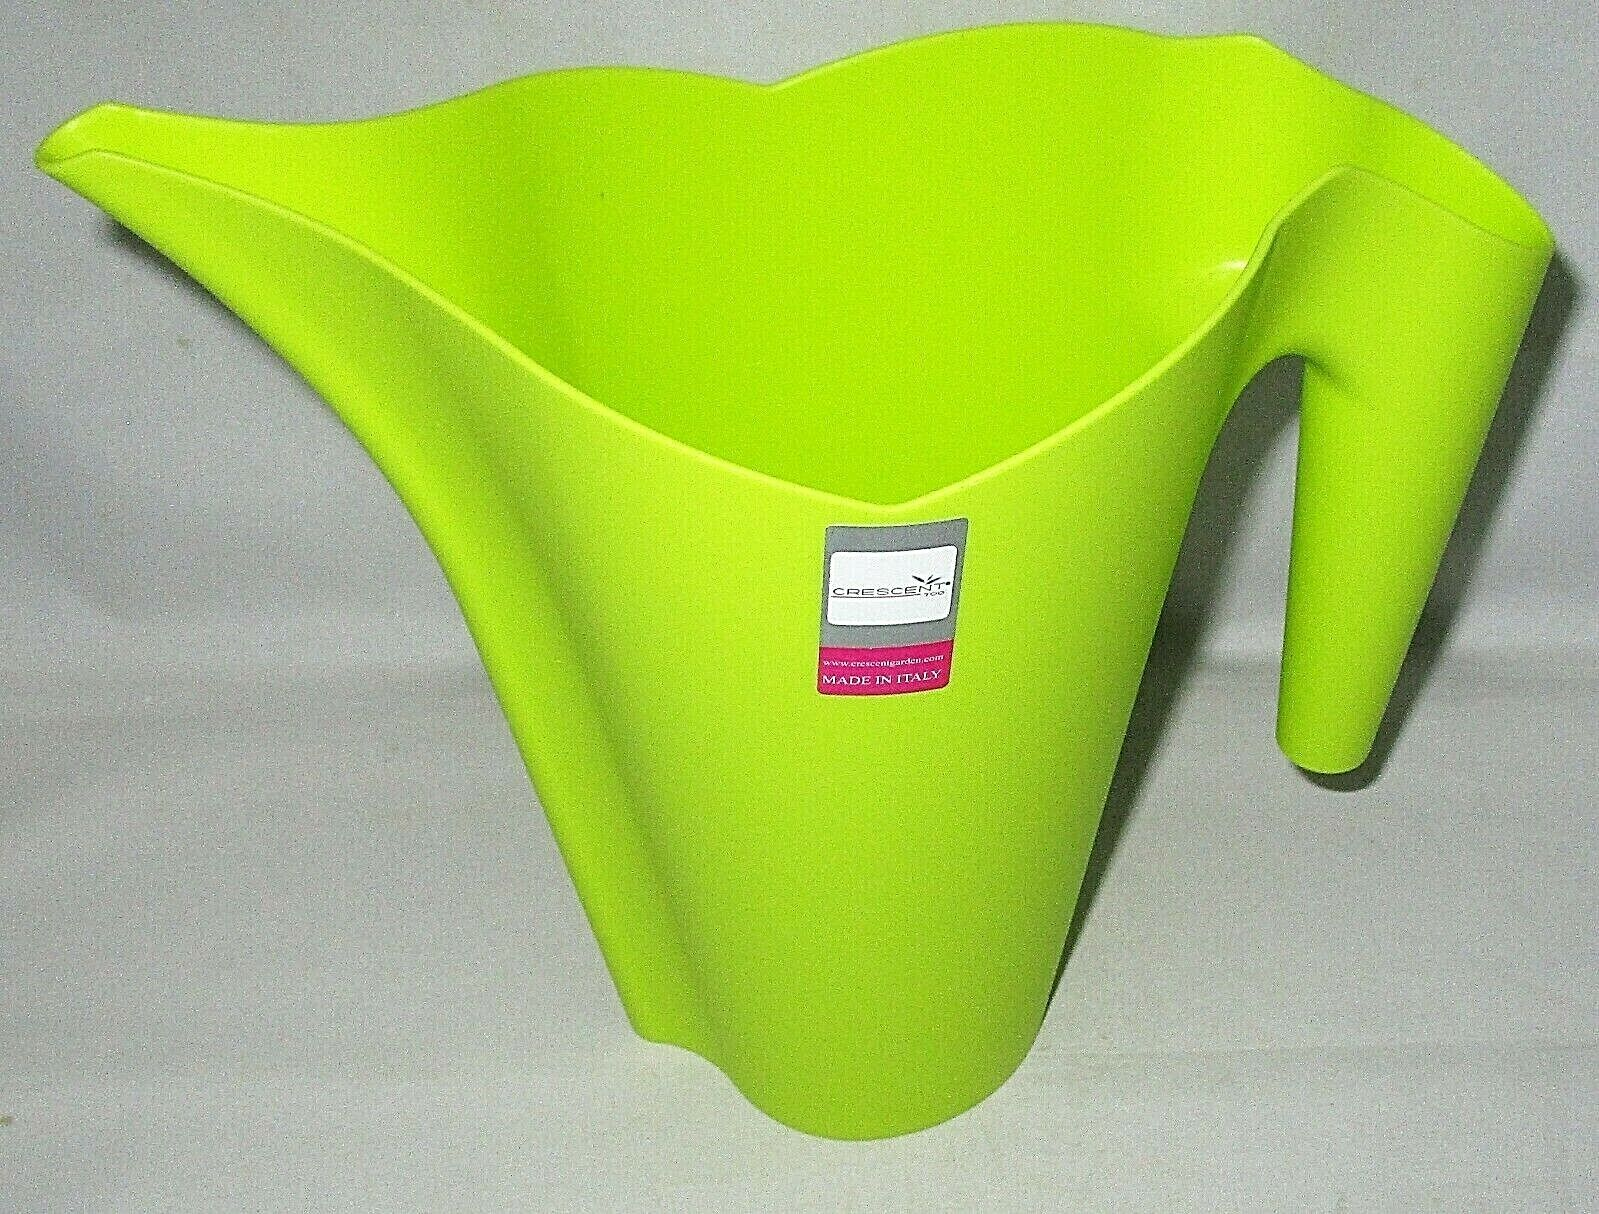 DECORATIVE WATERING CAN Holds 32 oz 7.5